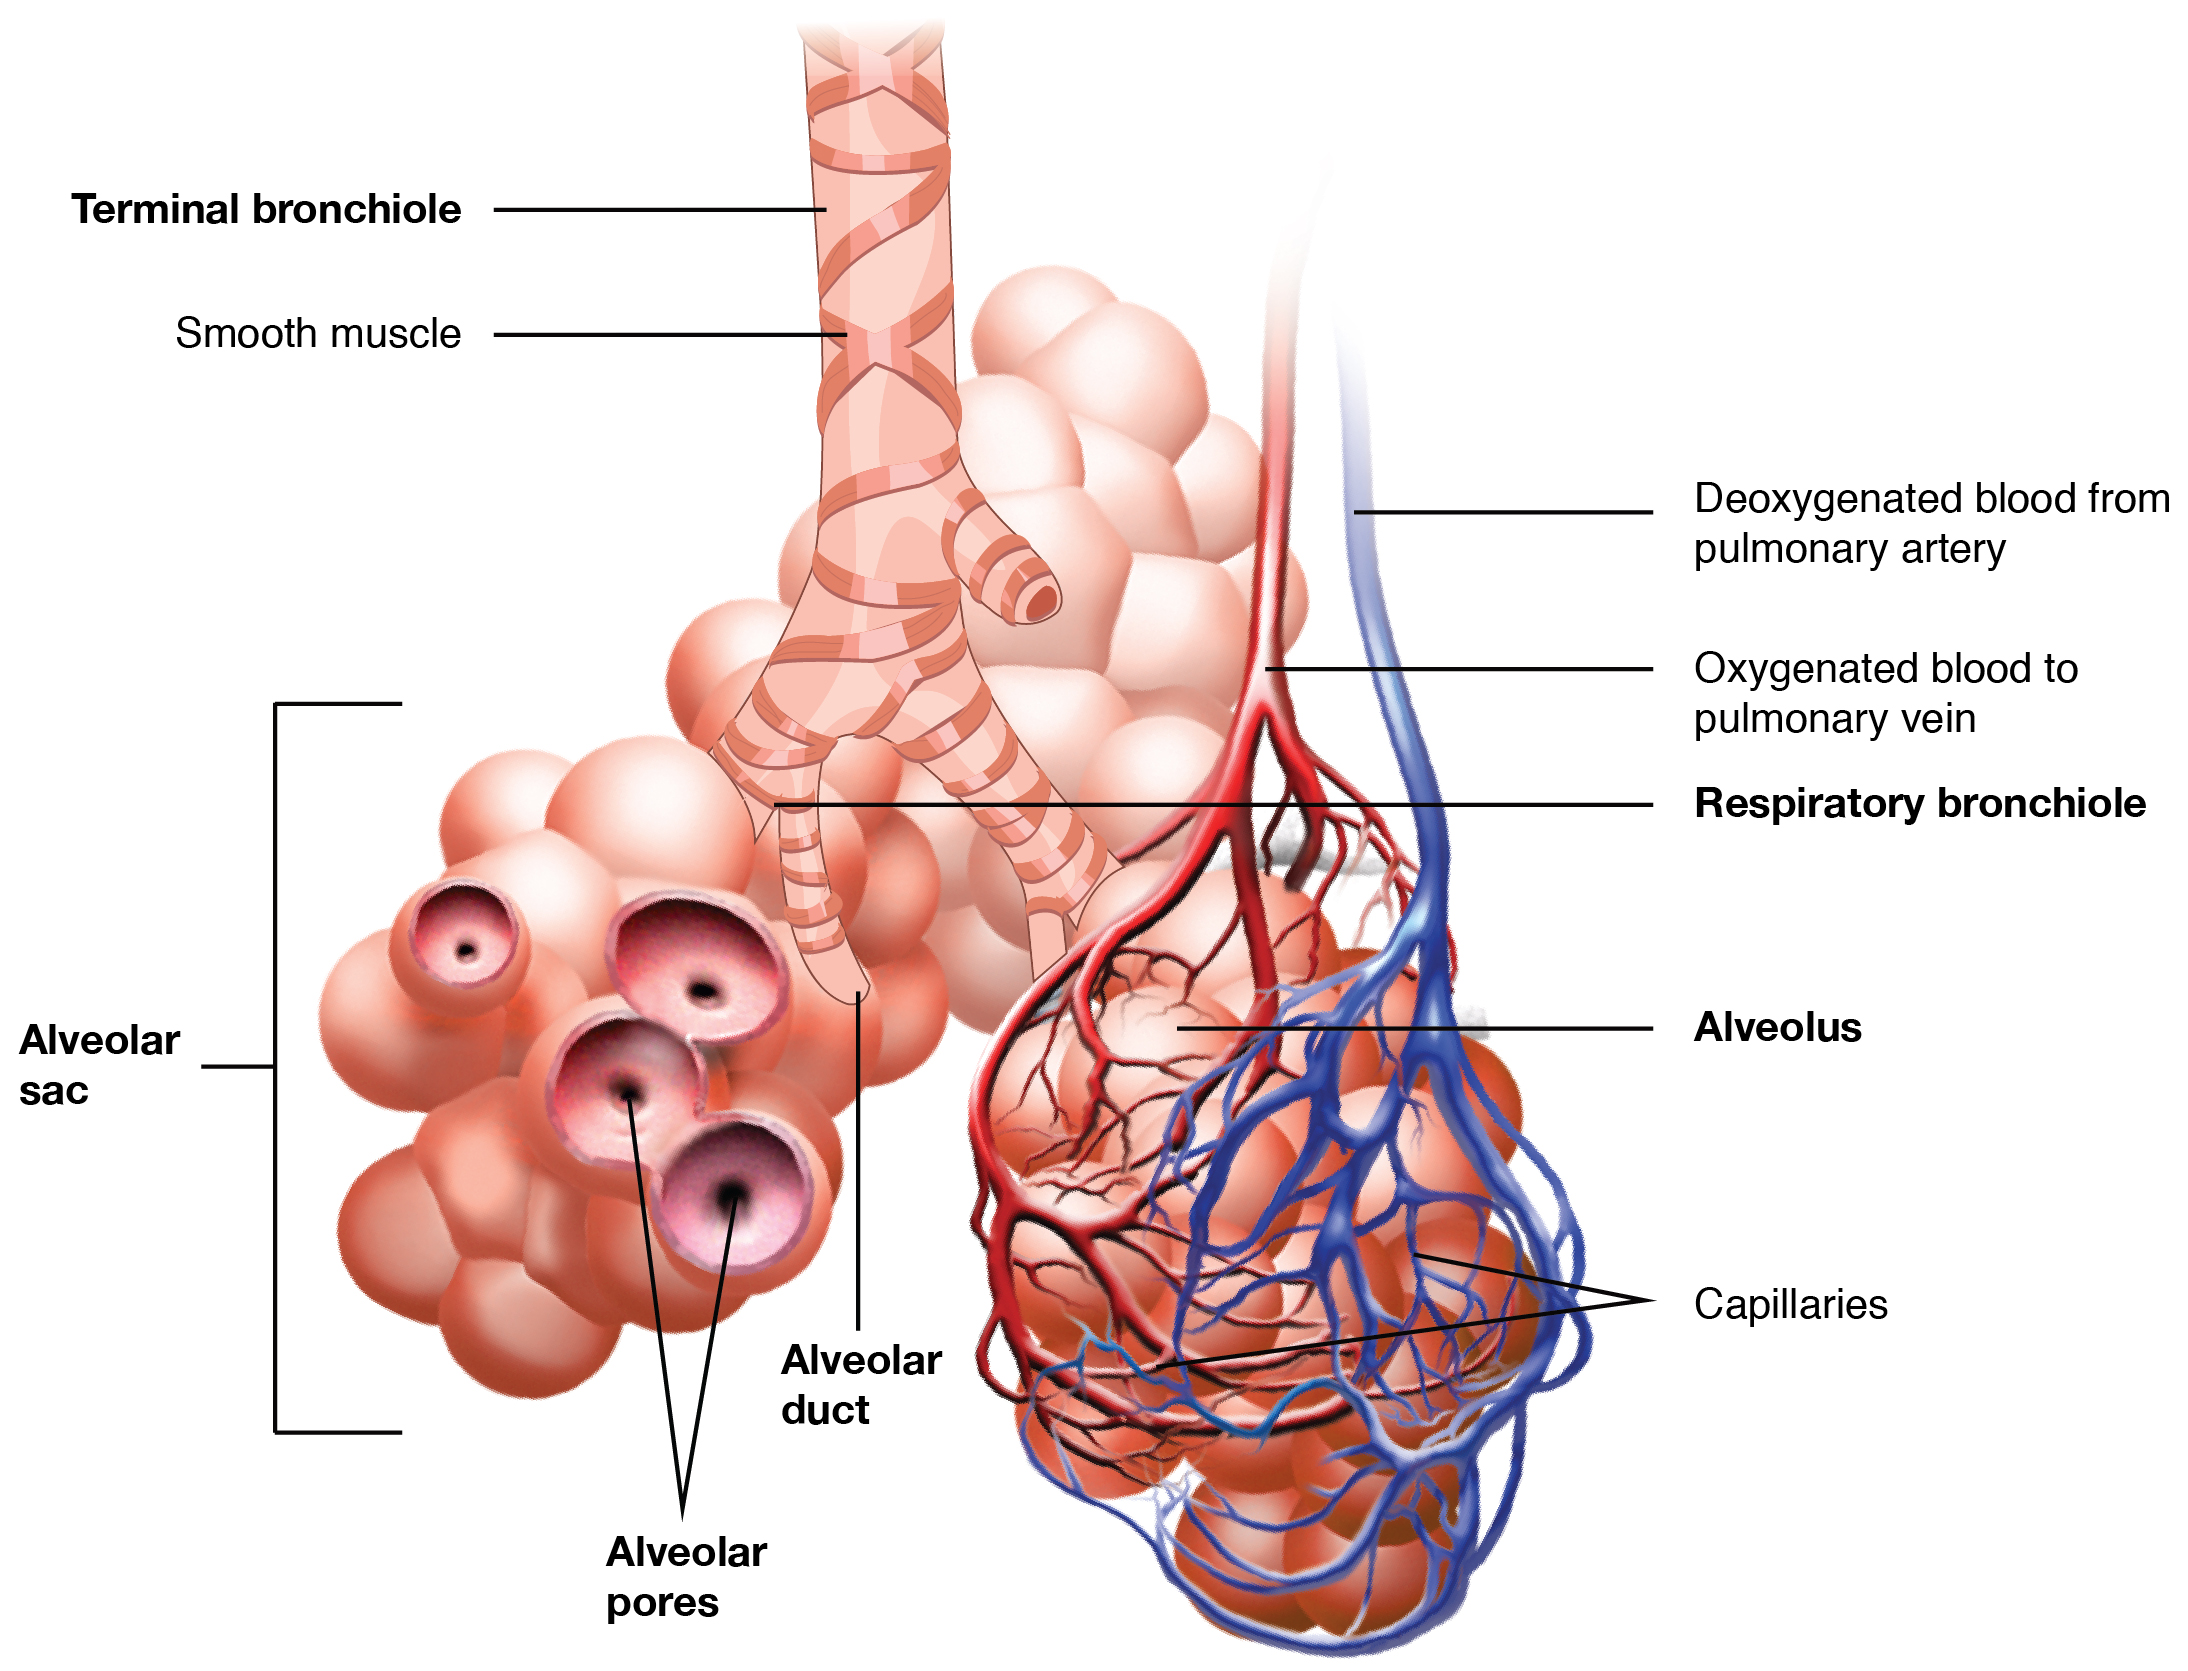 221 organs and structures of the respiratory system anatomy and this image shows the bronchioles and alveolar sacs in the lungs and depicts the exchange of ccuart Choice Image